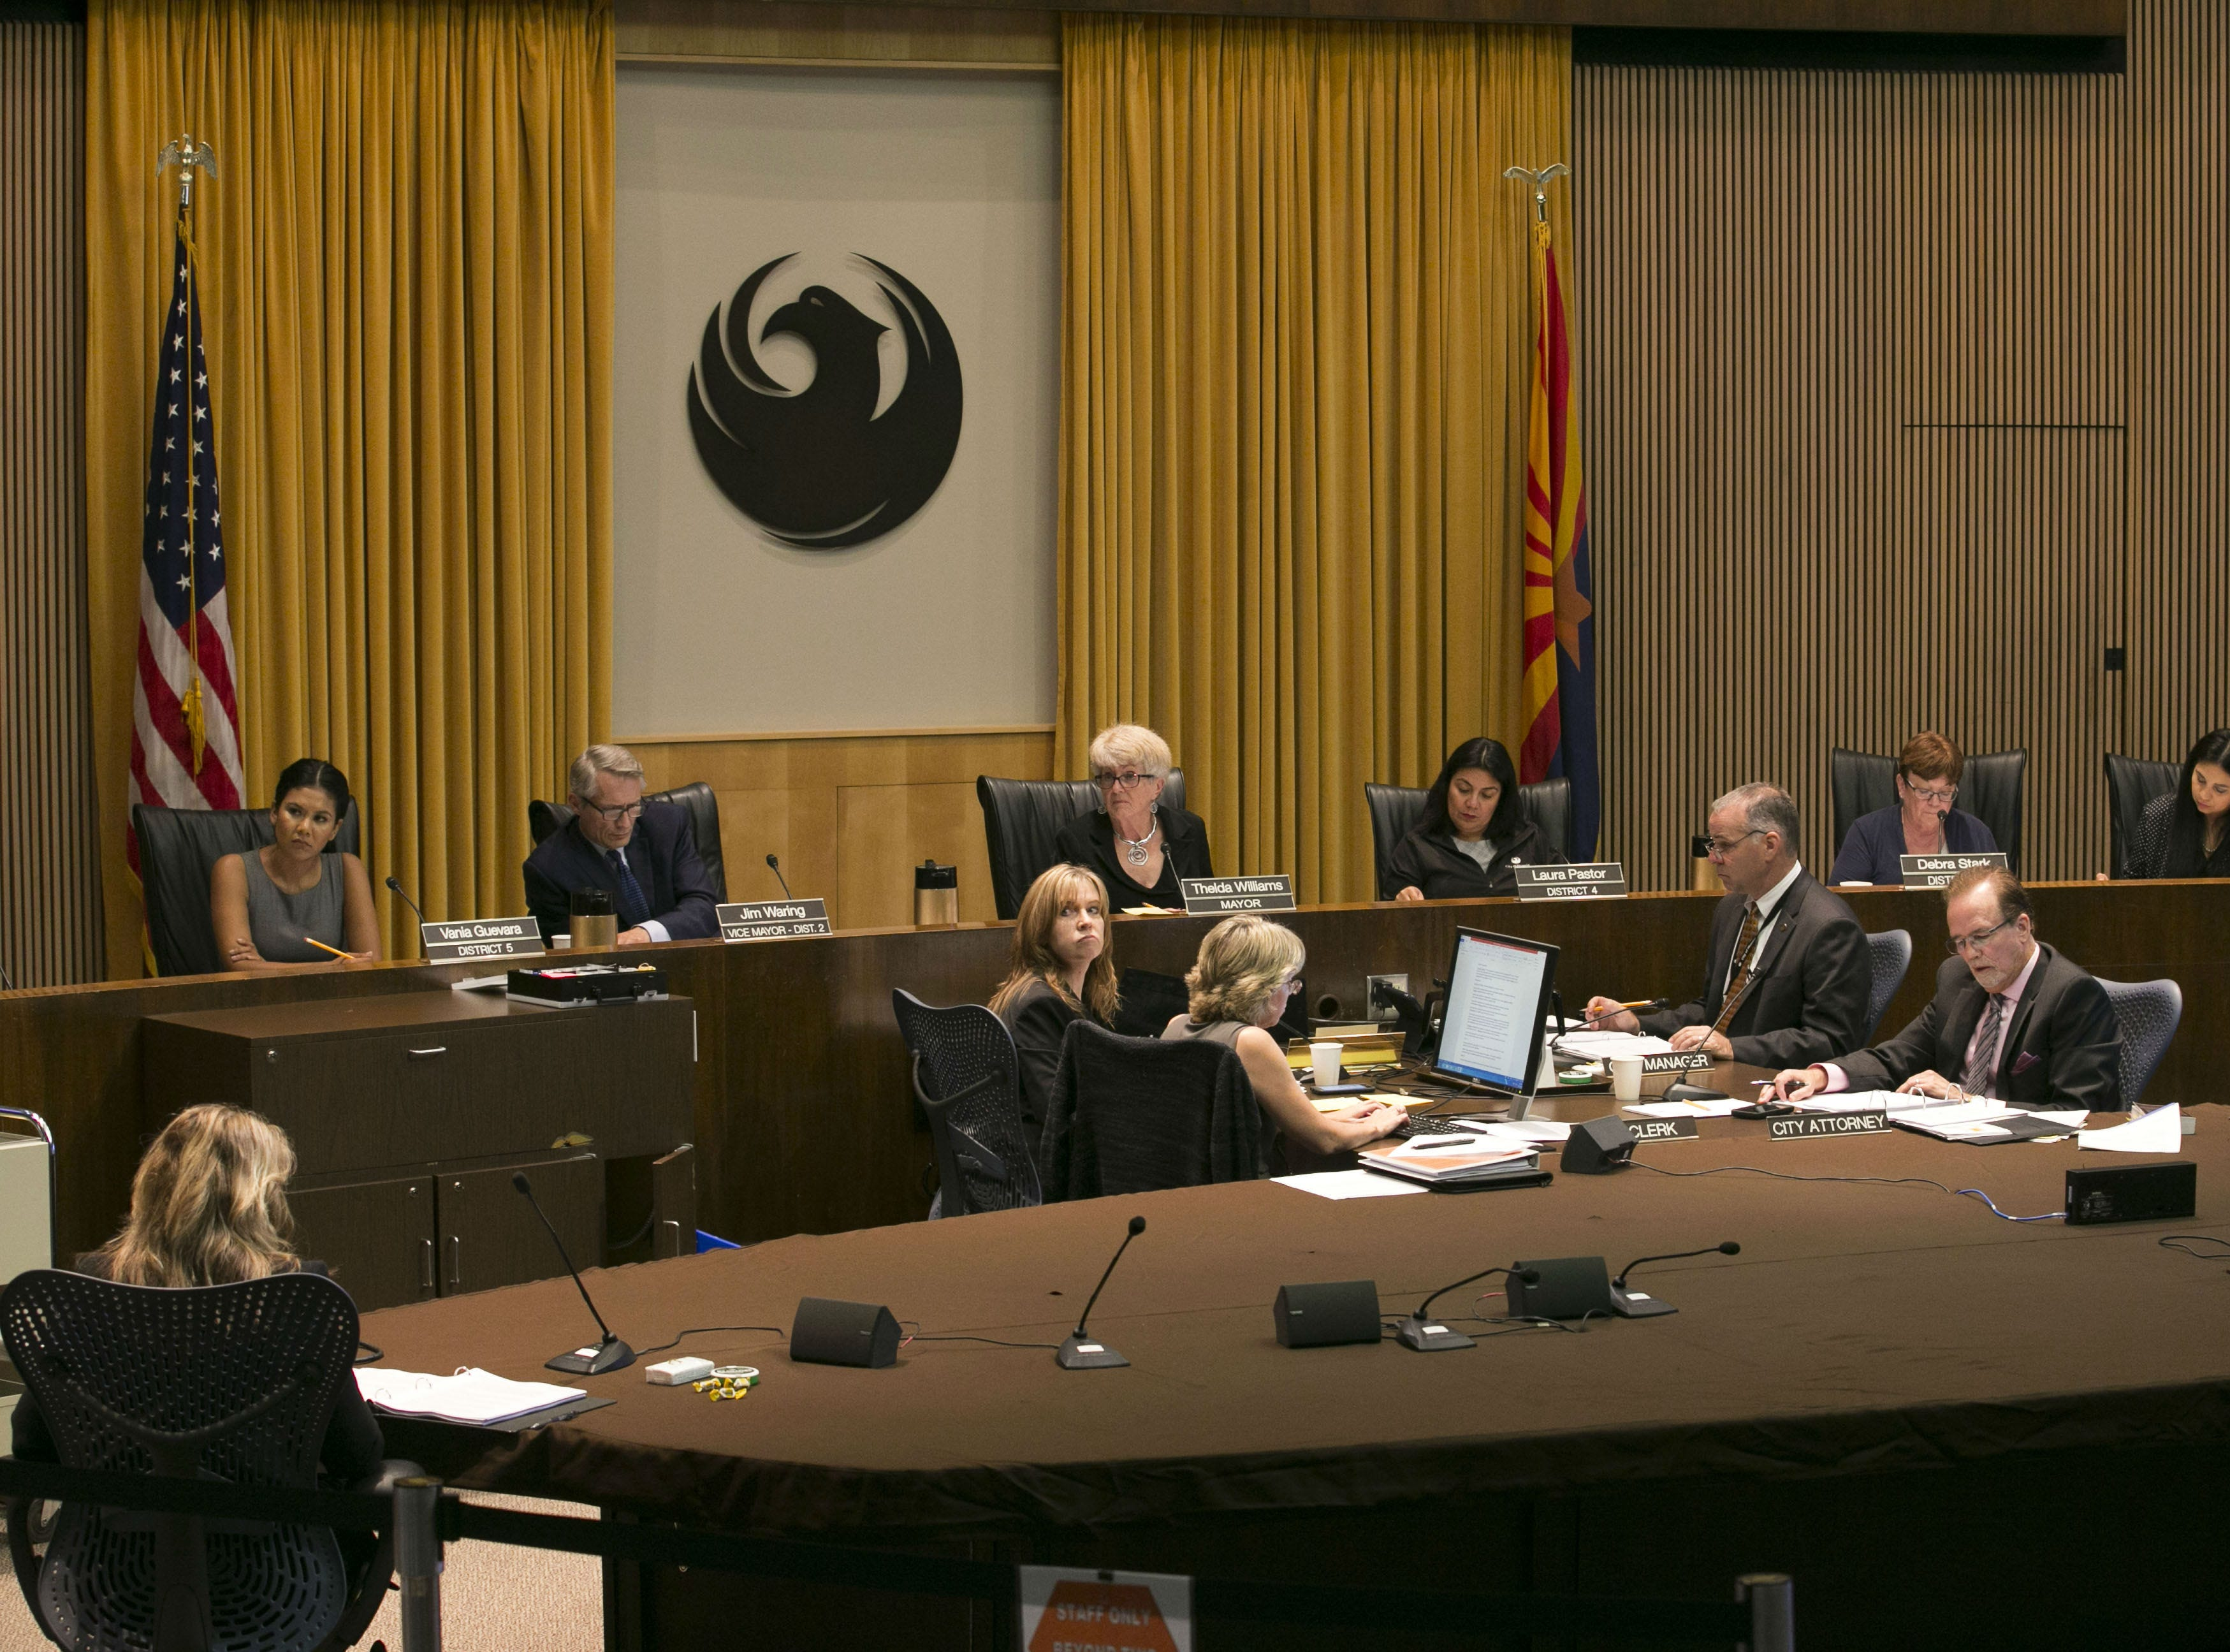 A Phoenix City Council meeting at the Phoenix City Council Chambers on Sept. 19, 2018.